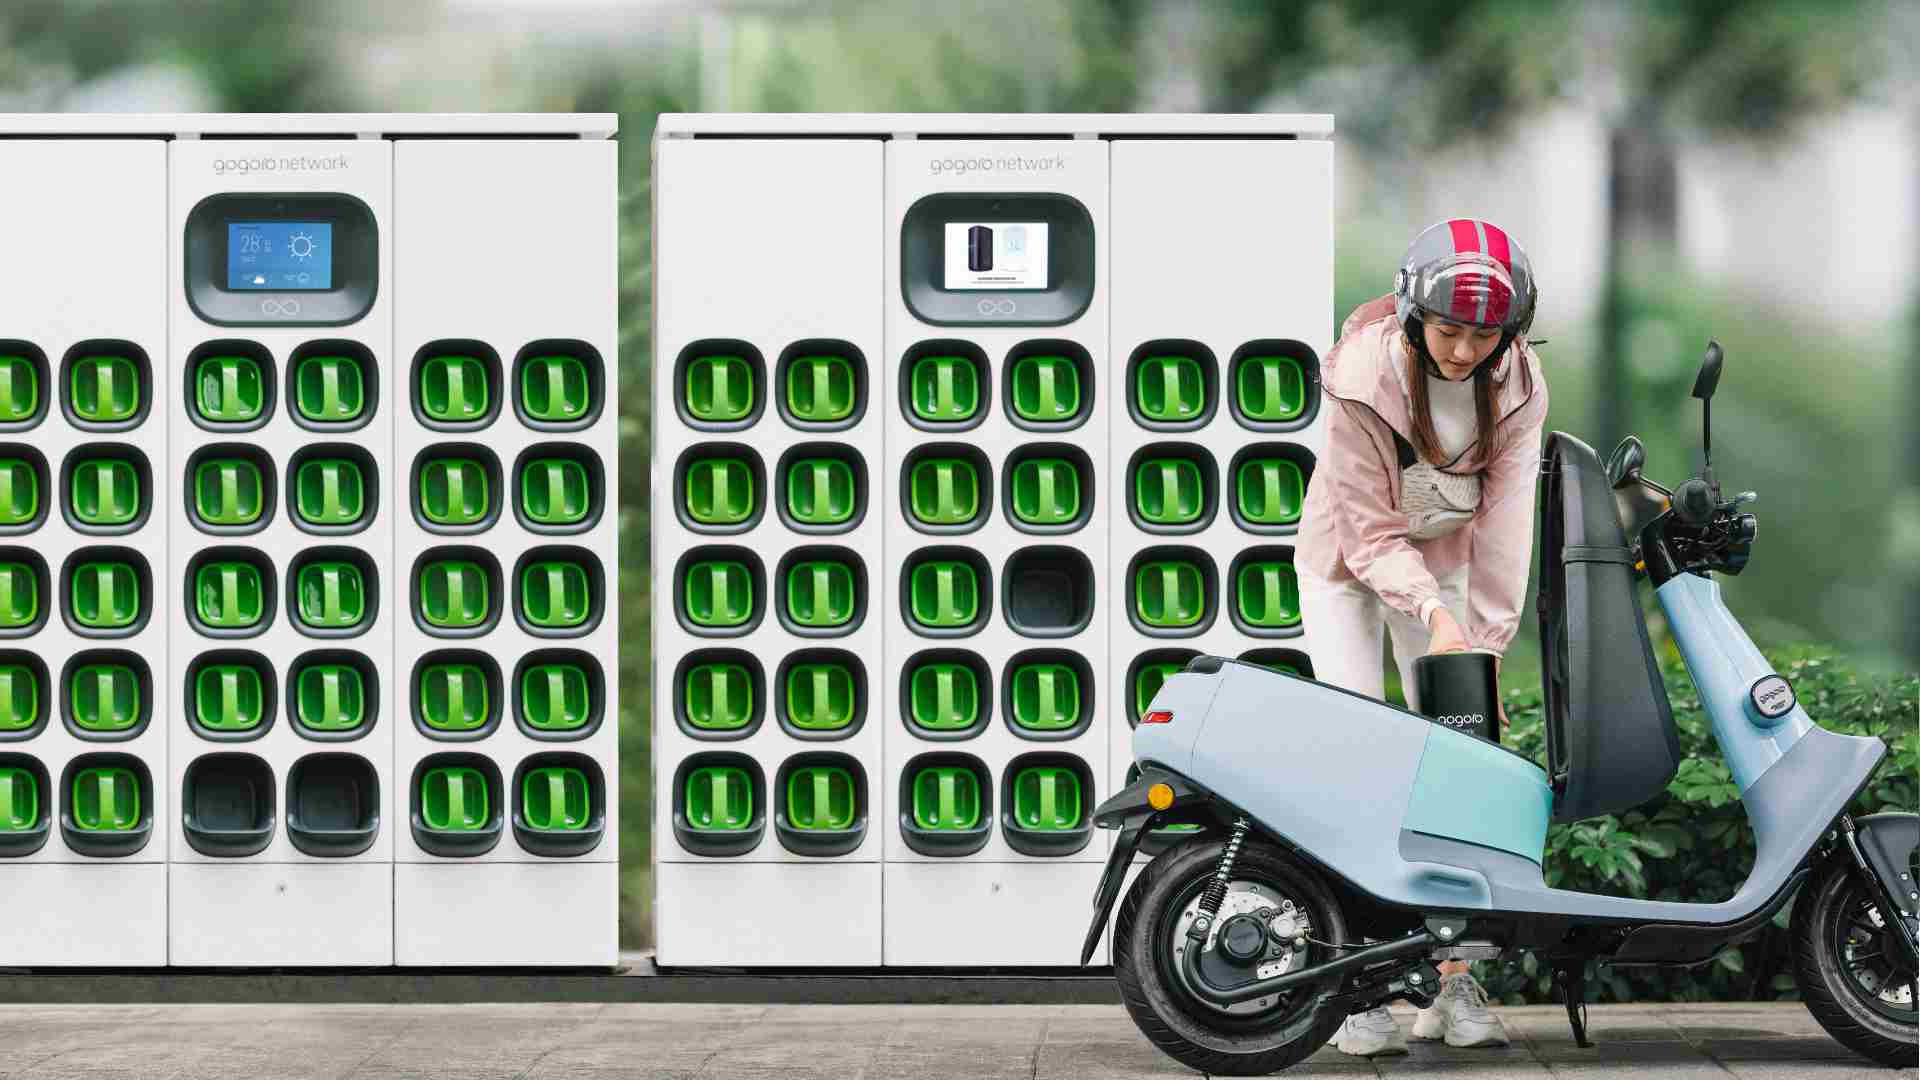 Gogoro's battery swap system eliminates long charging times, making electric two-wheelers much more practical. Image: Gogoro